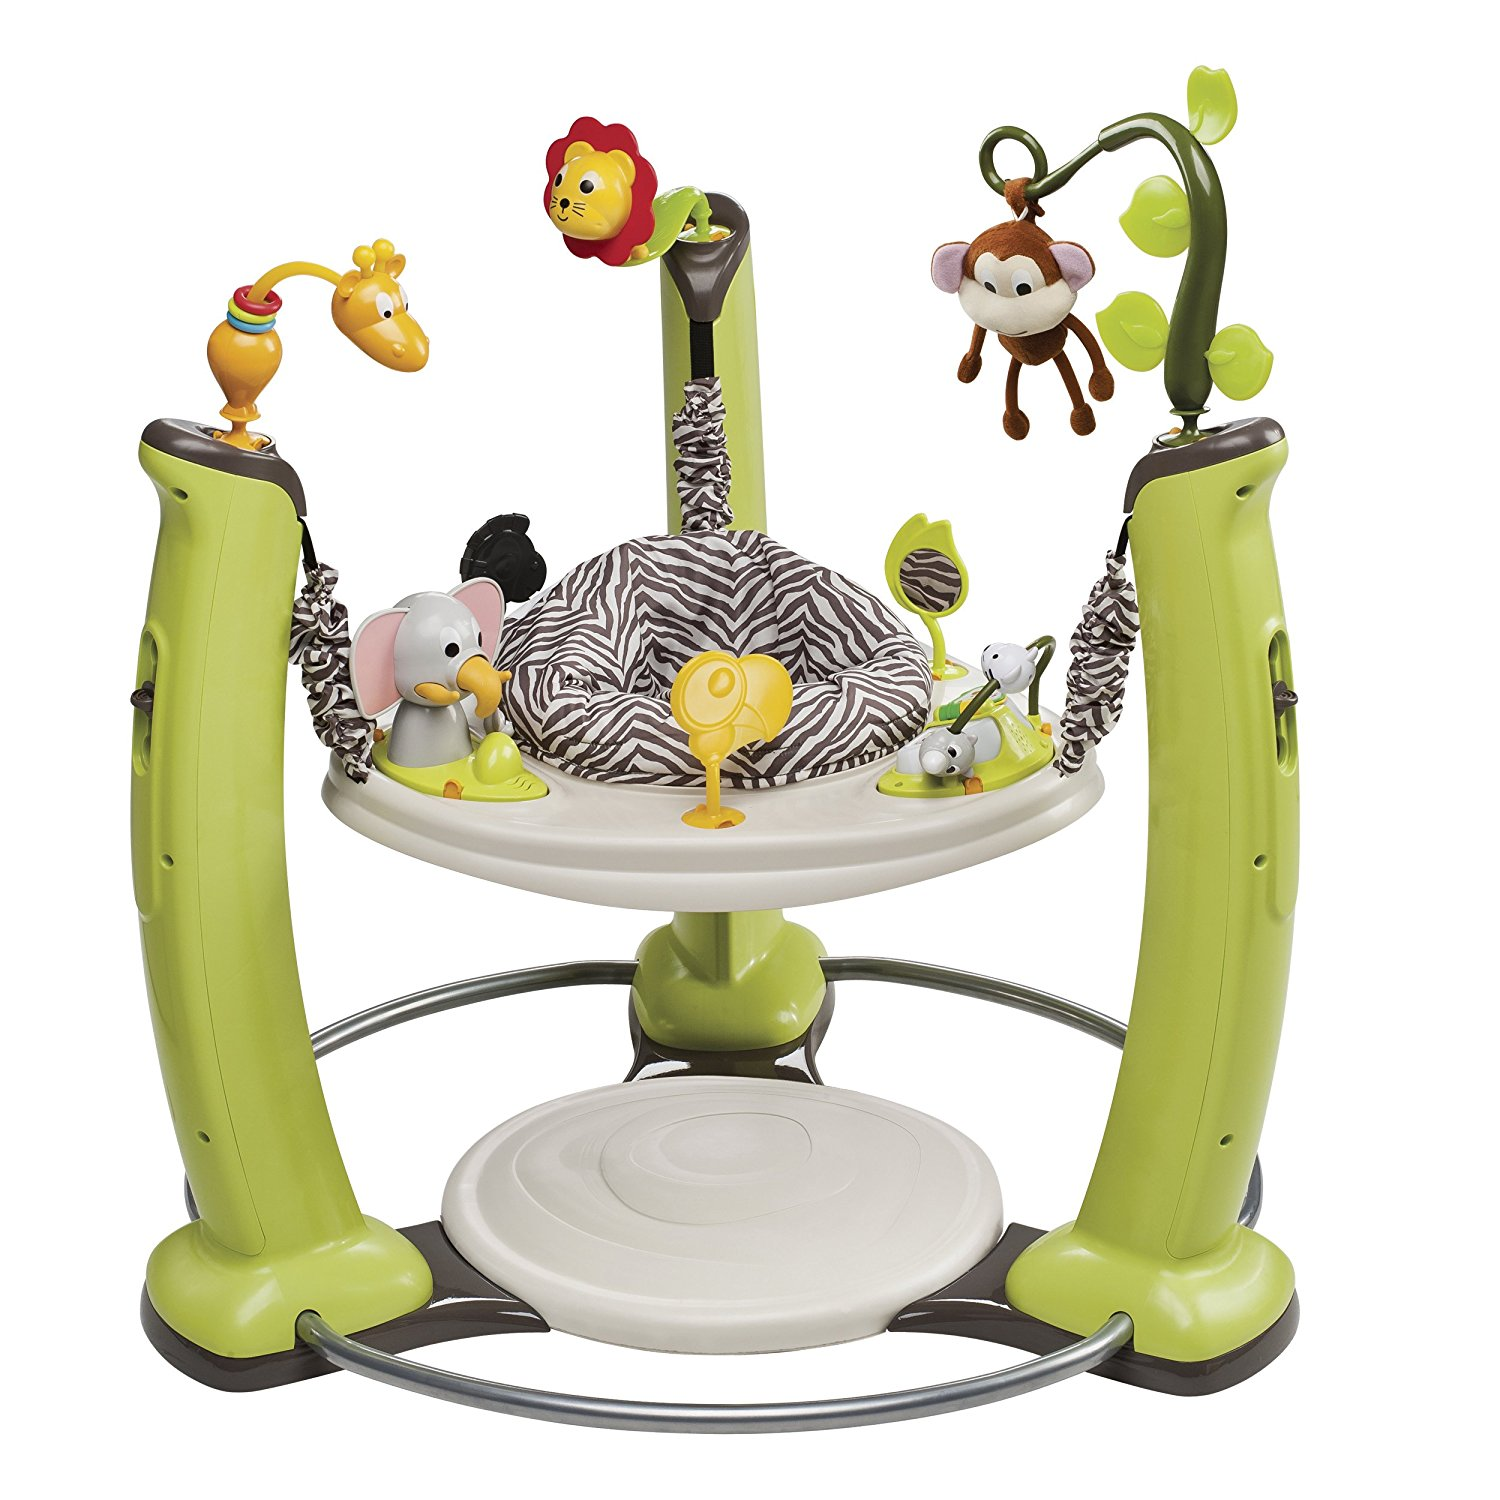 Evenflo ExerSaucer Jump & Learn Stationary Jumper - Jungle Quest